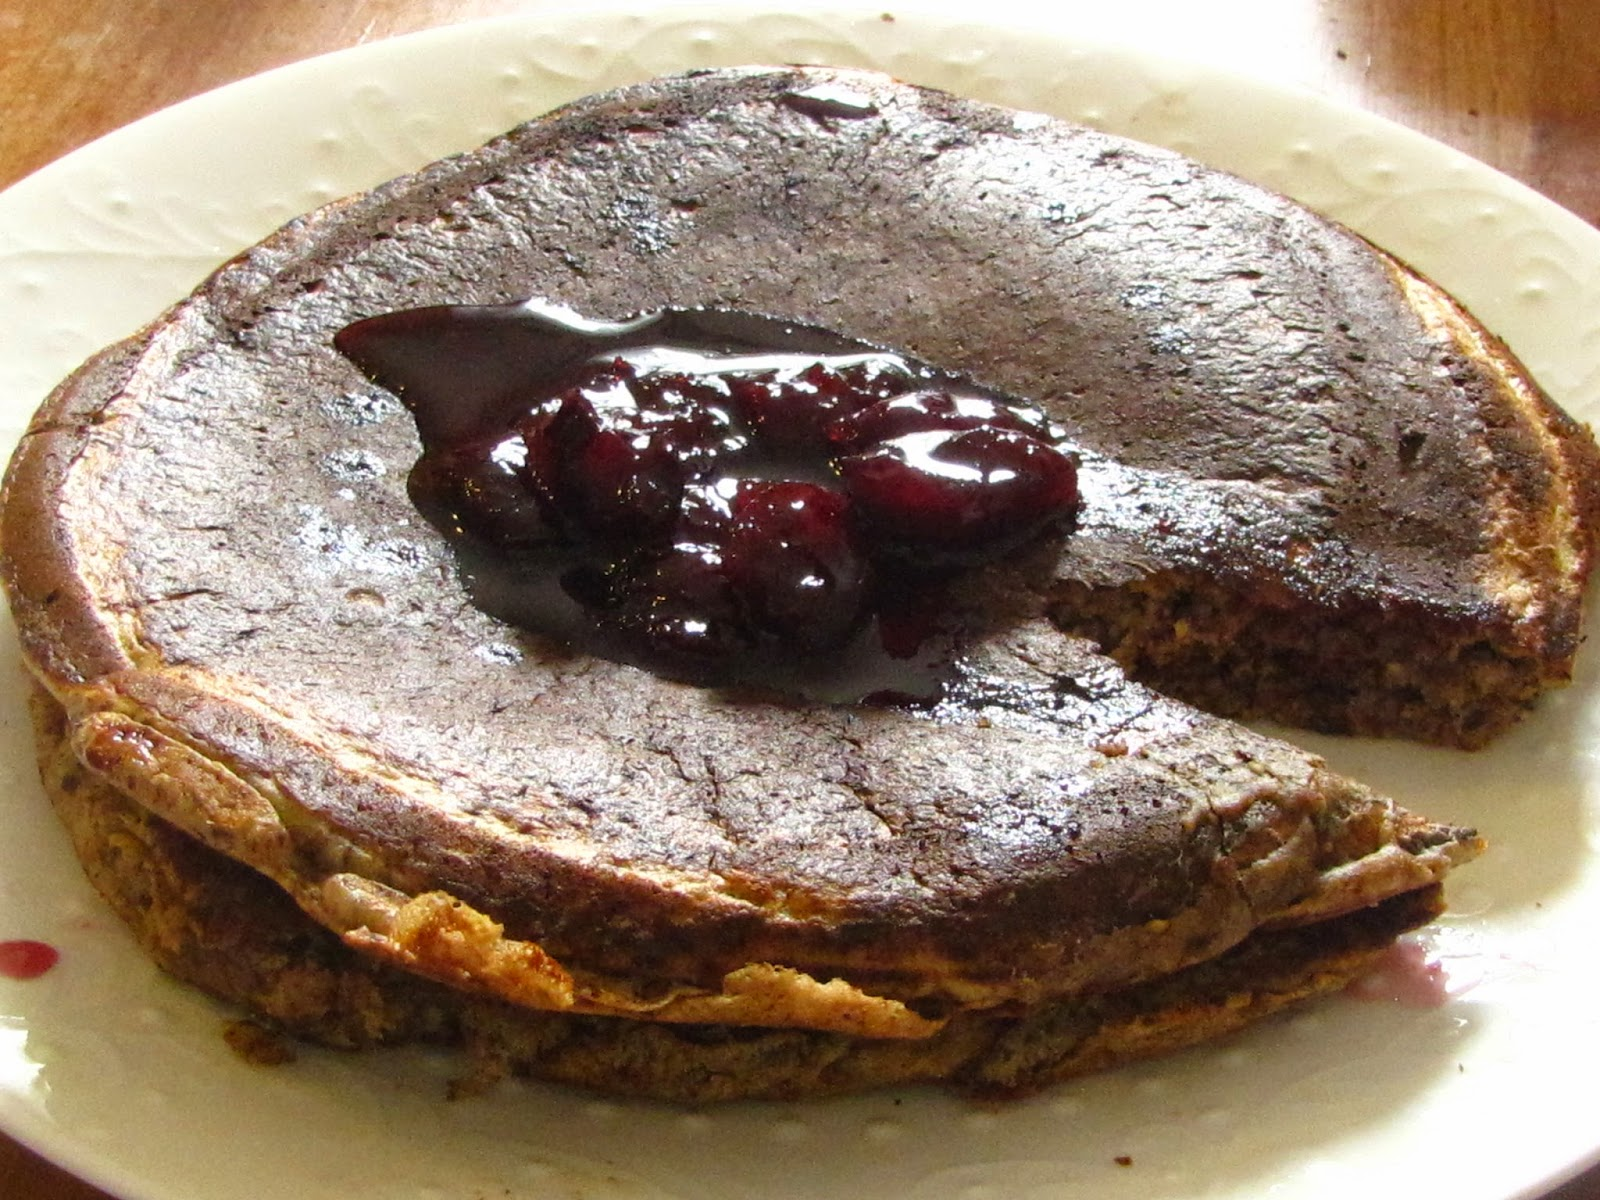 Chocolate Almond Oats Buttermilk Pancake with homemade Cherry Syrup